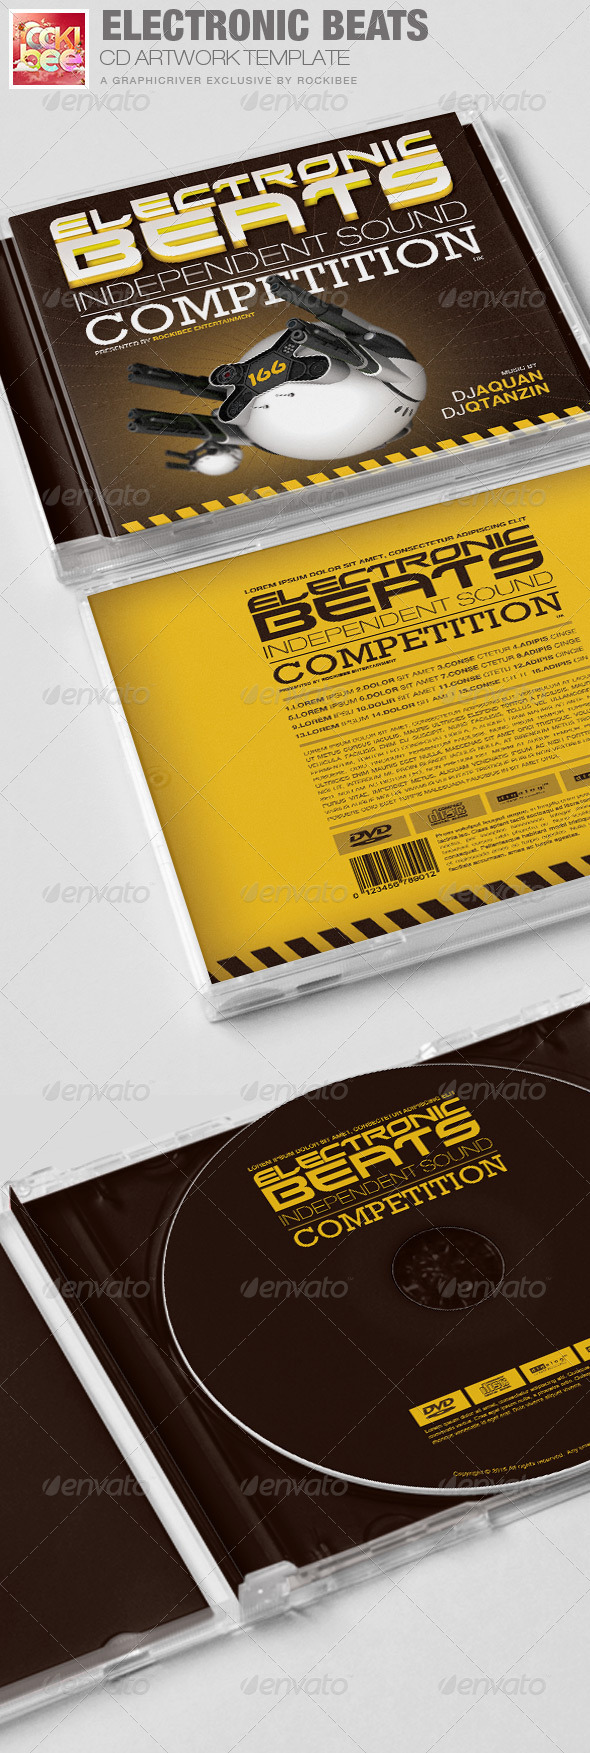 GraphicRiver Electronic Beats CD Artwork Template 6644299